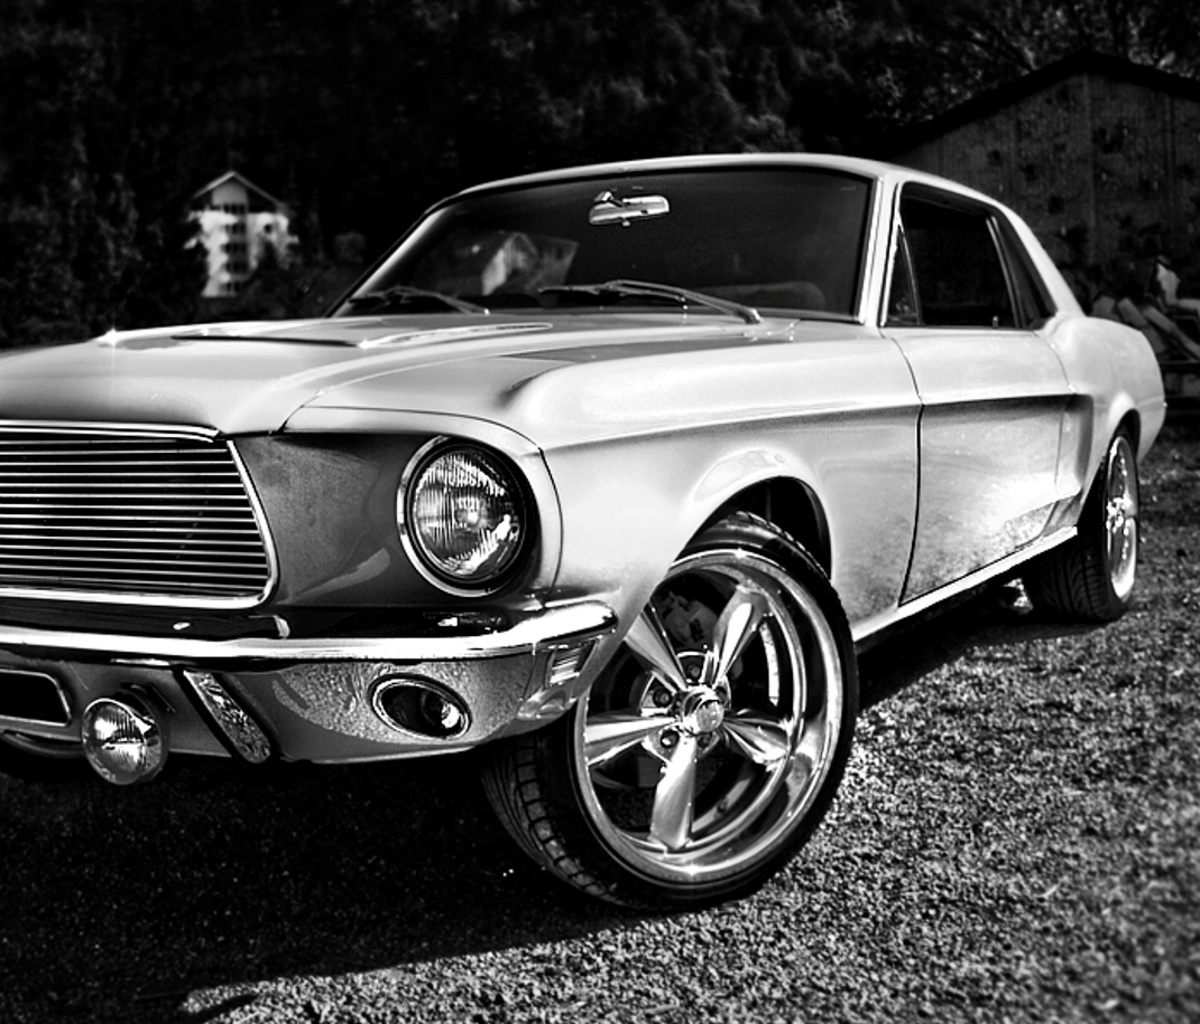 [47+] Ford Screensavers And Wallpaper On WallpaperSafari